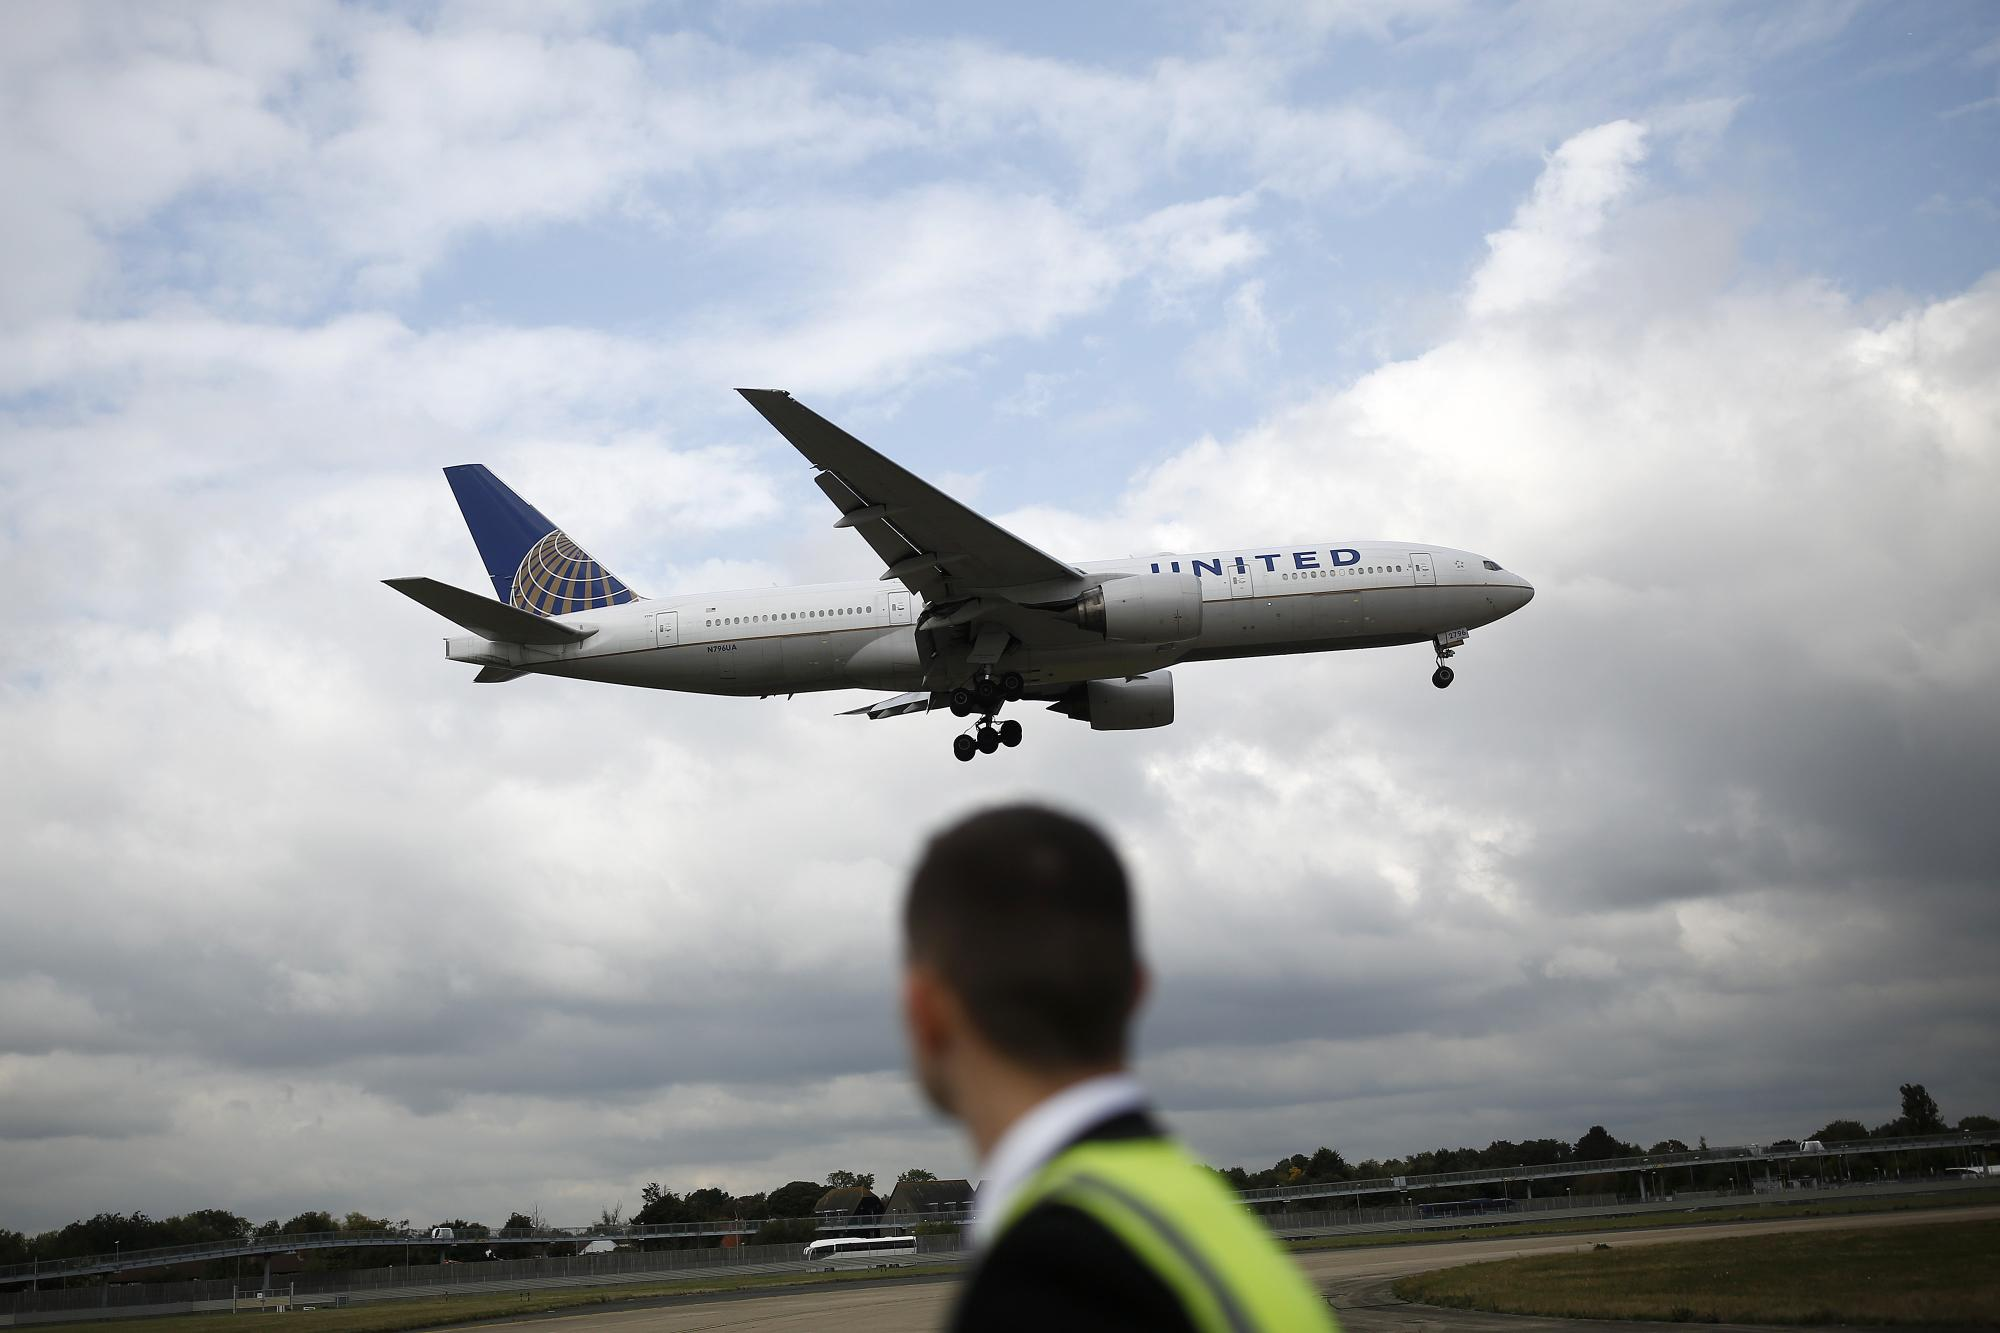 United Jumps Most Since July on Fare Power, Pacing Airline Rally